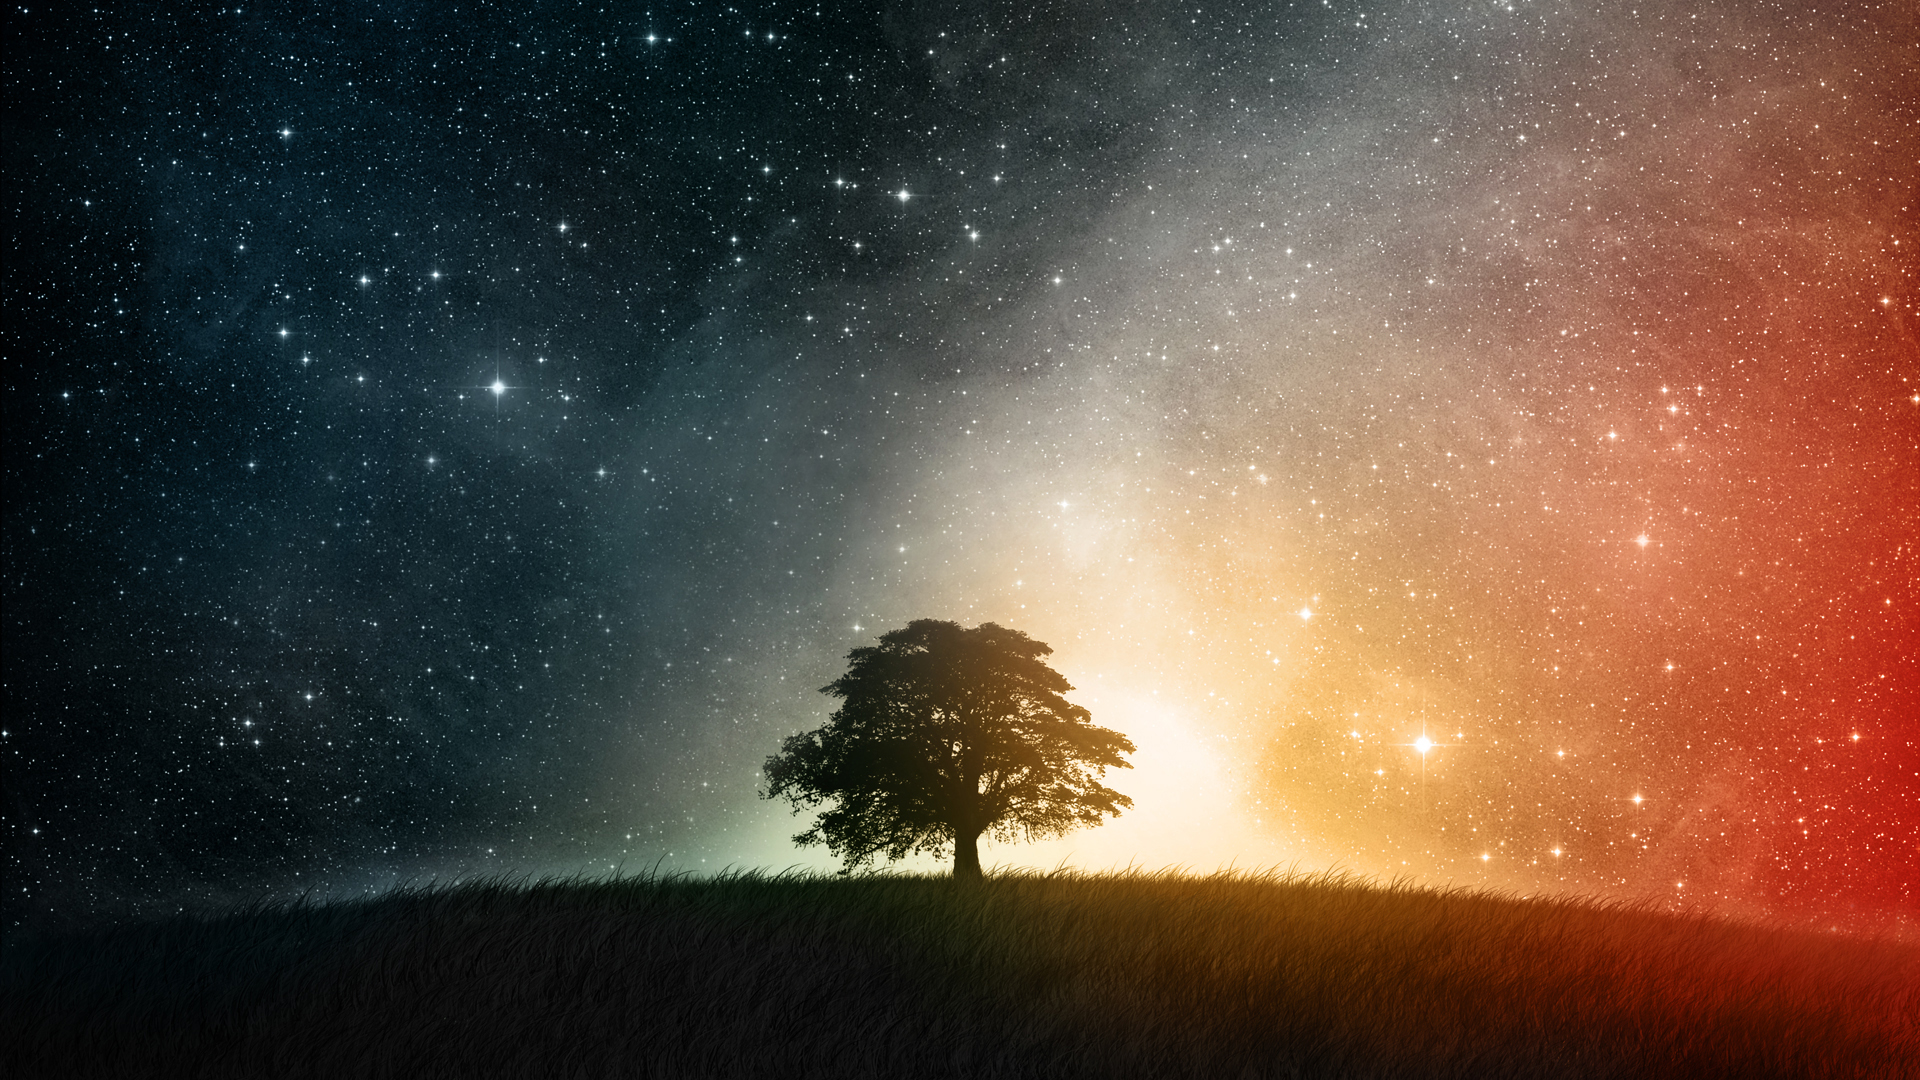 Beautiful Galaxy Wallpaper - WallpaperSafari